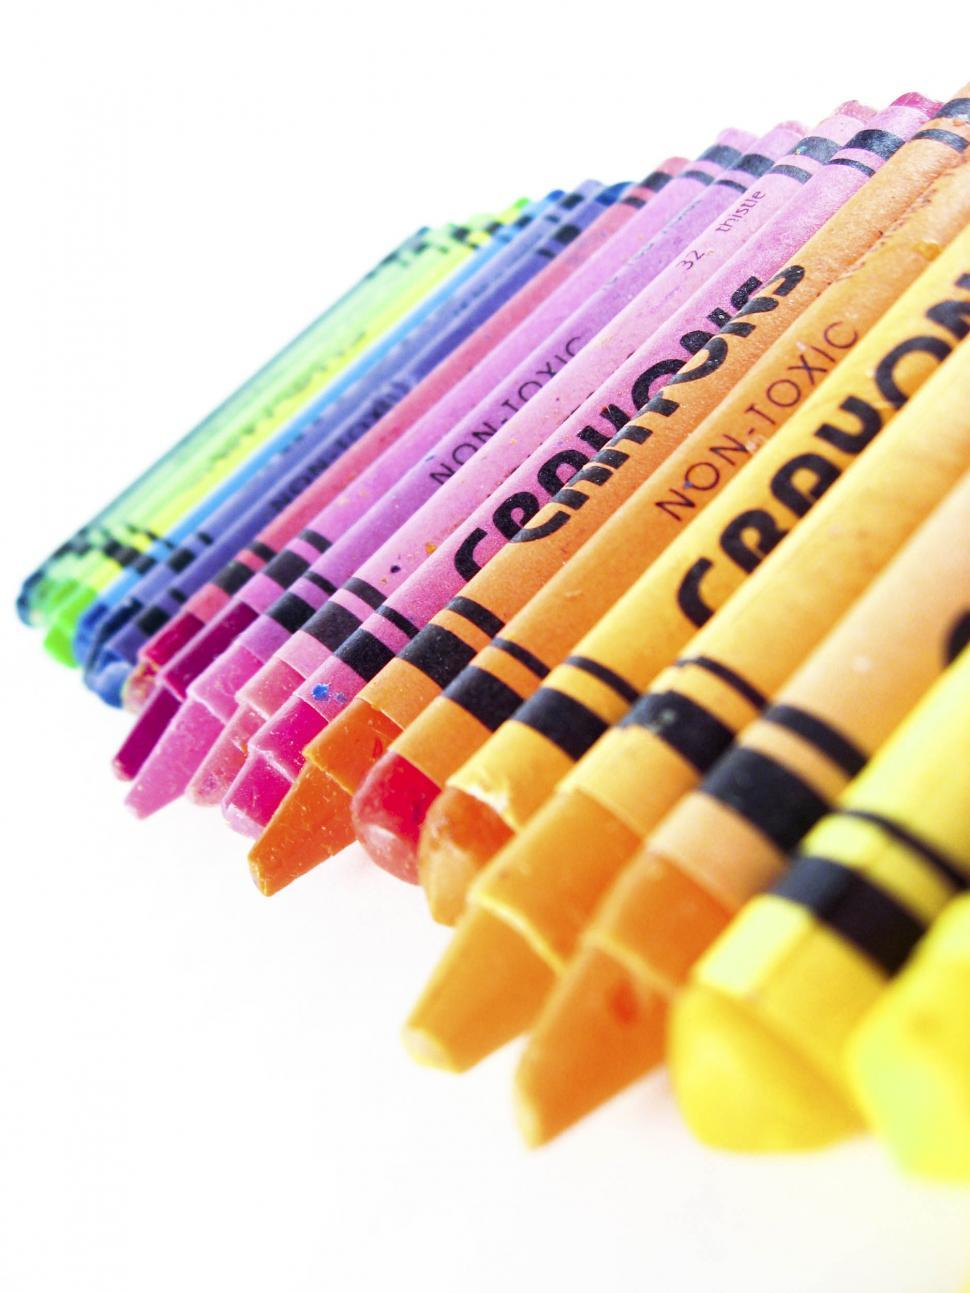 Download Free Stock HD Photo of crayons Online